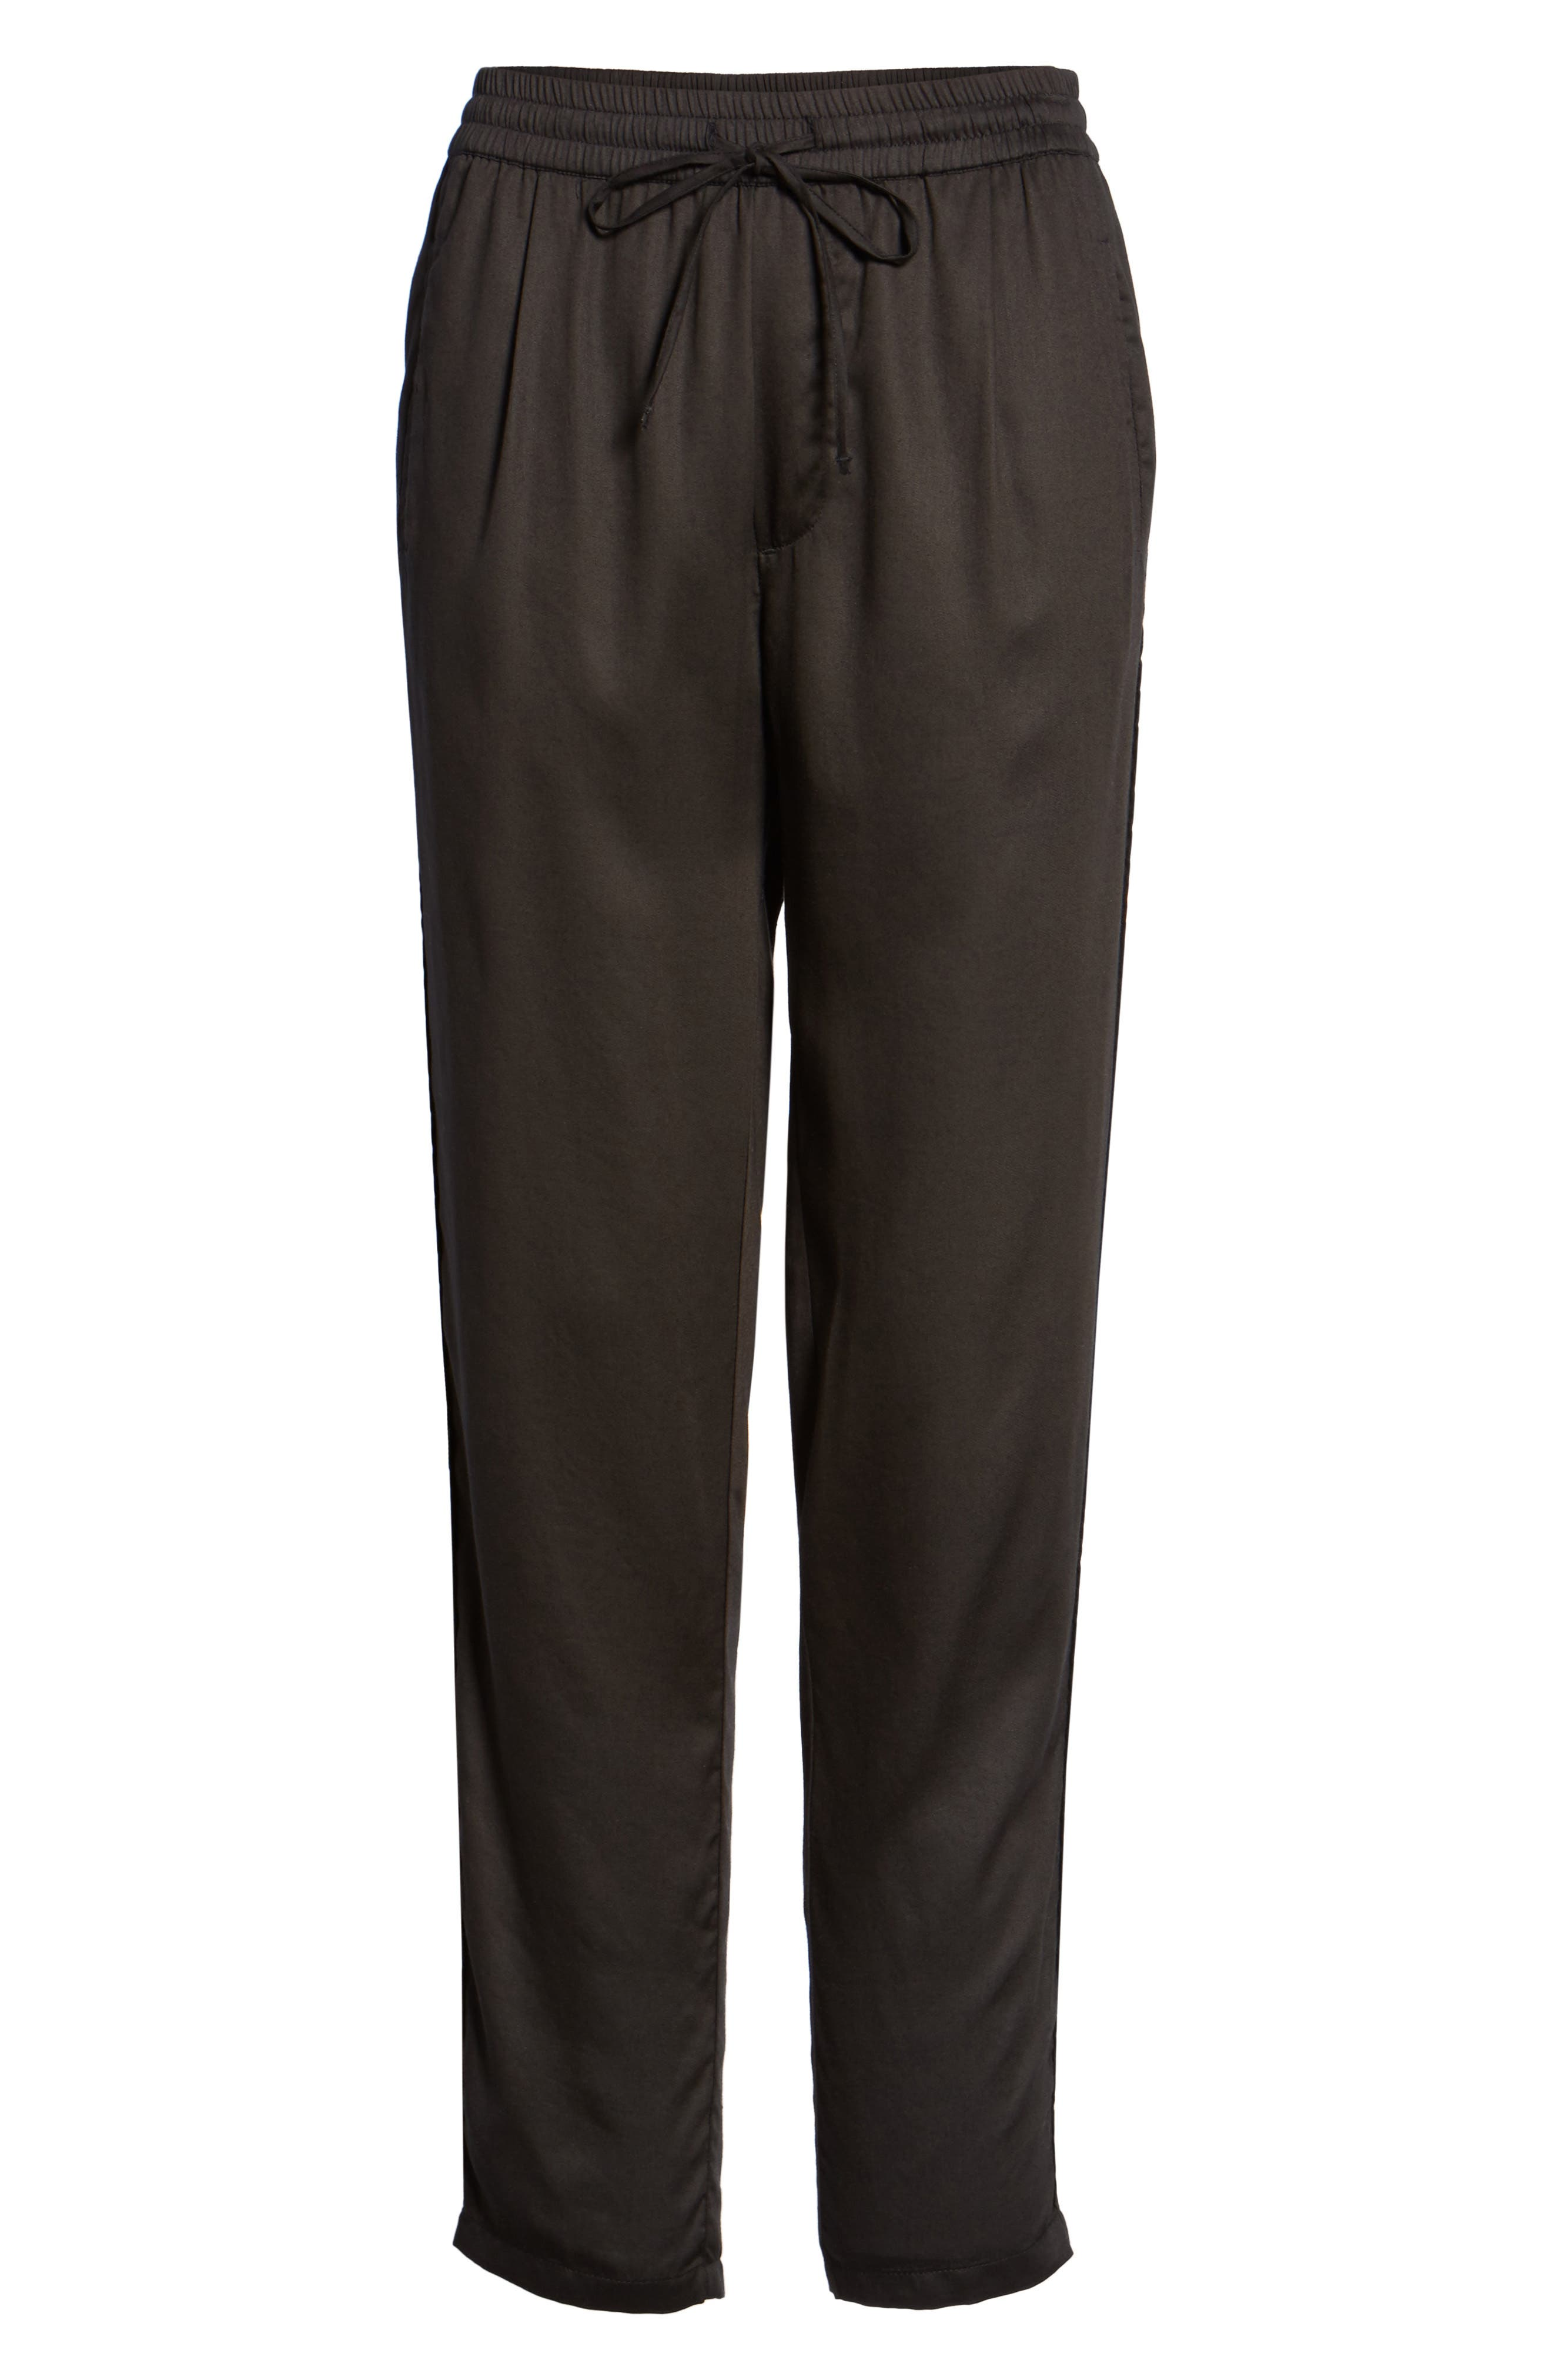 Savoy Satin Pants,                             Alternate thumbnail 6, color,                             001